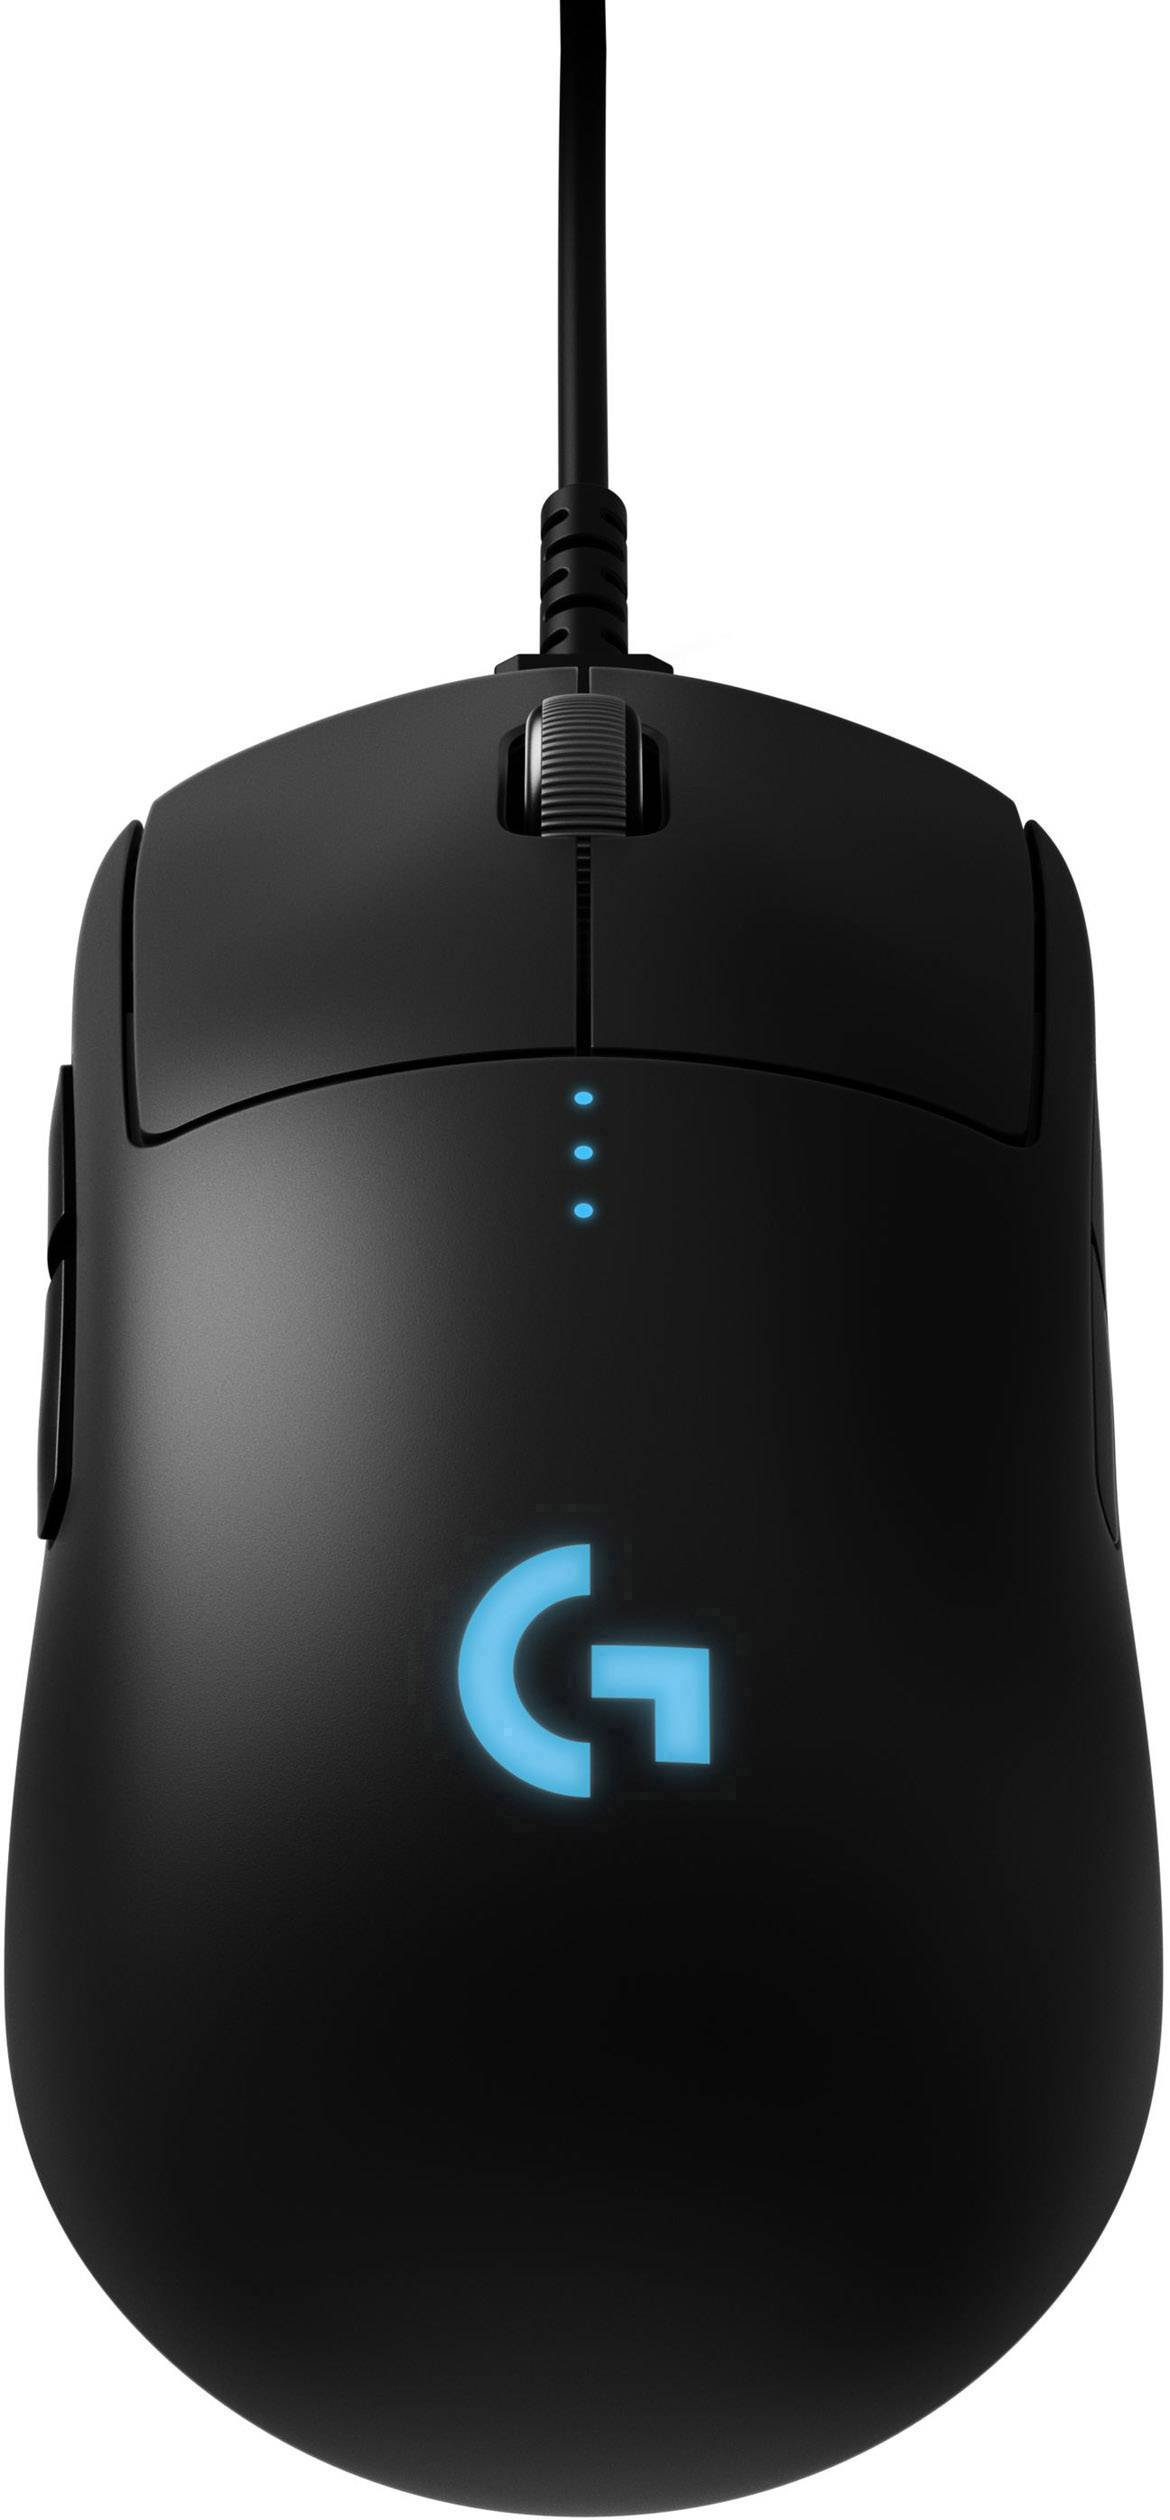 Gaming Mouse With Detachable Cable